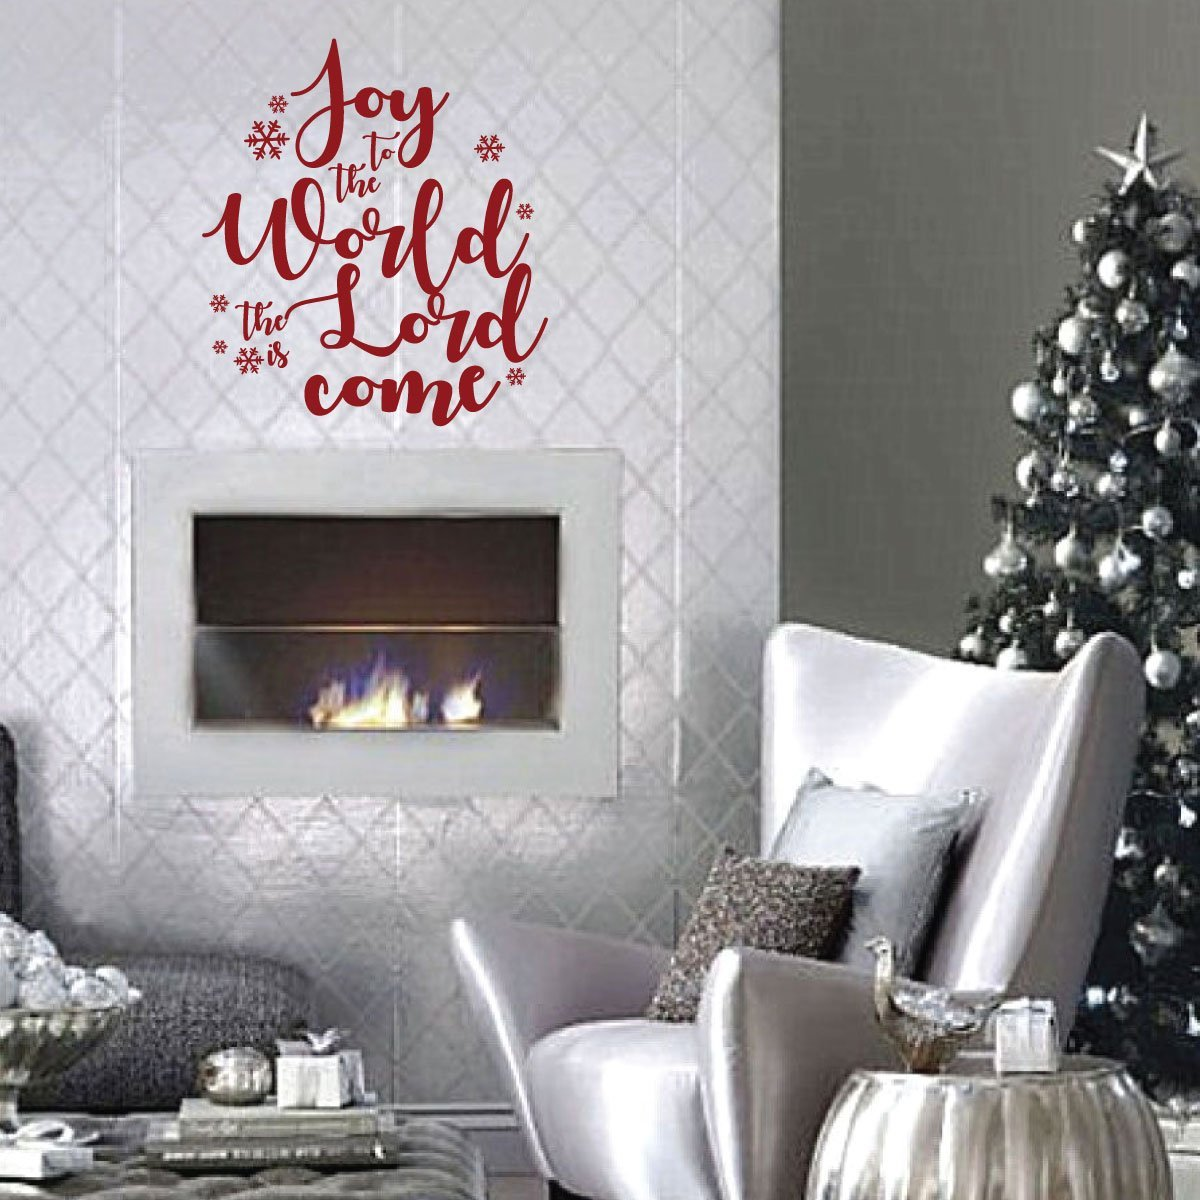 Christmas Wall Decals Removable.Christmas Wall Decals Joy Vinyl Decor Wall Decal